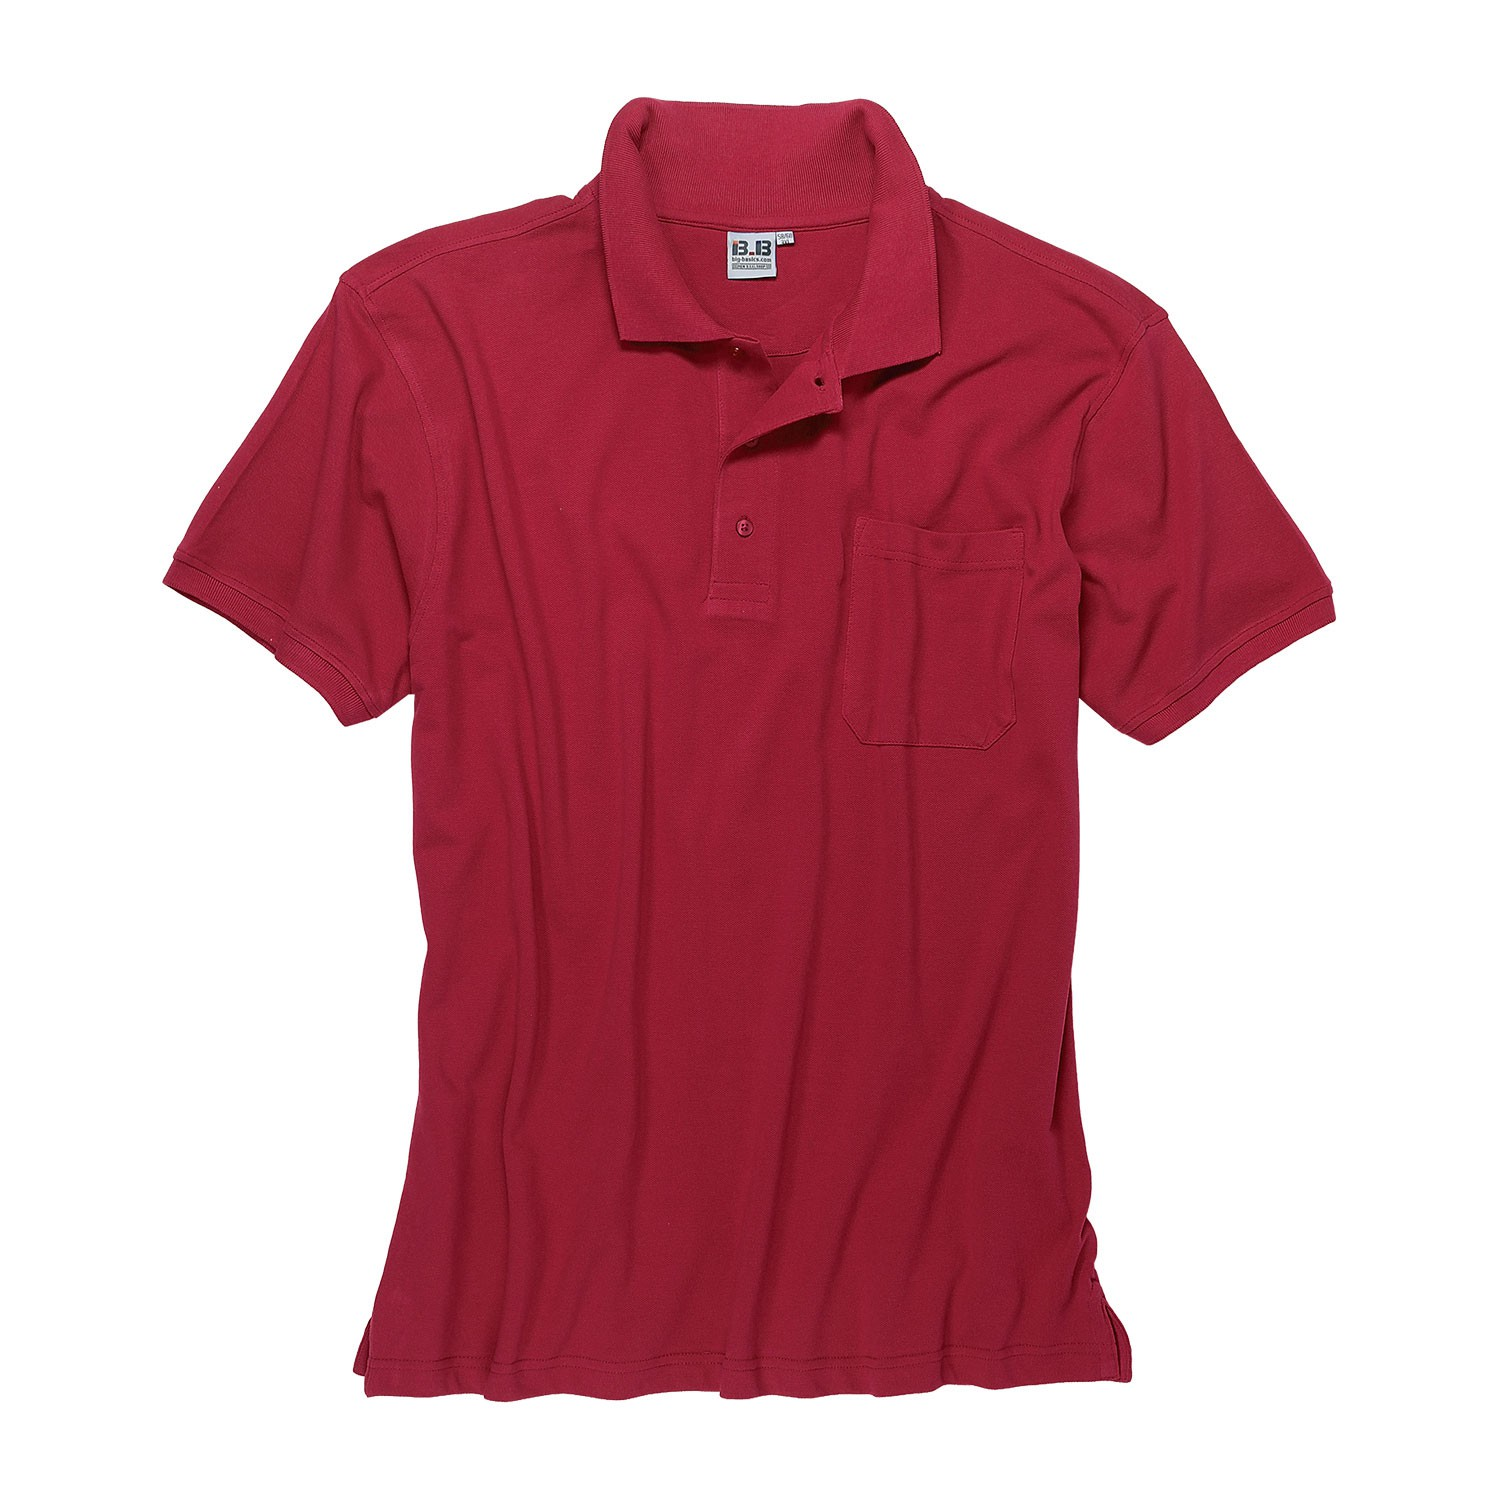 Detail Image to Red polo shirt by Big-Basics in oversizes up to 8XL